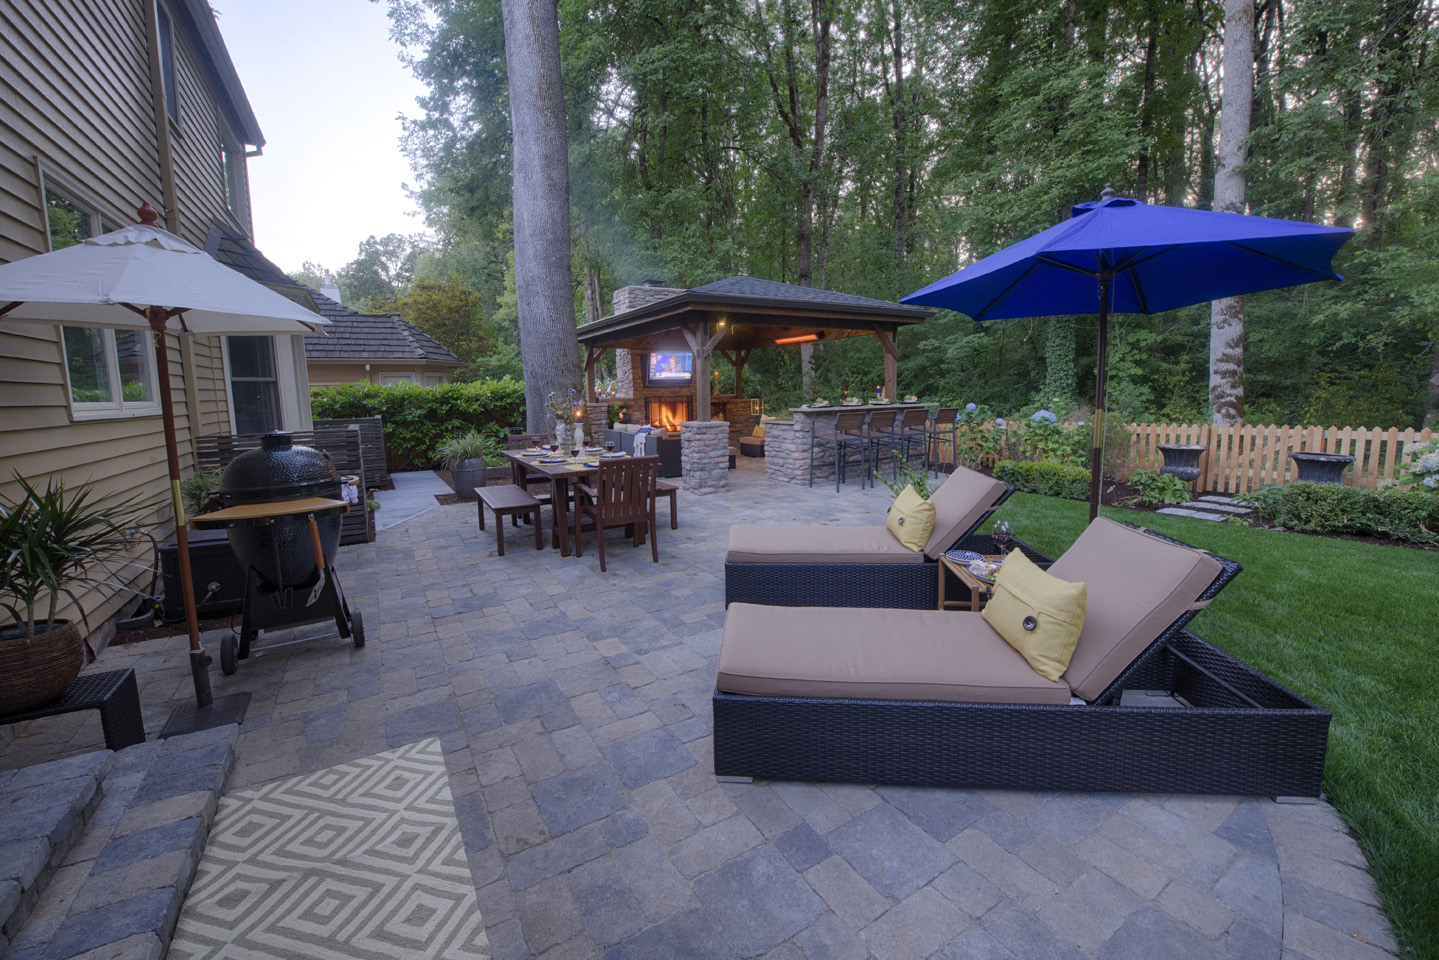 Hardscape Patio with Dining area & loungers